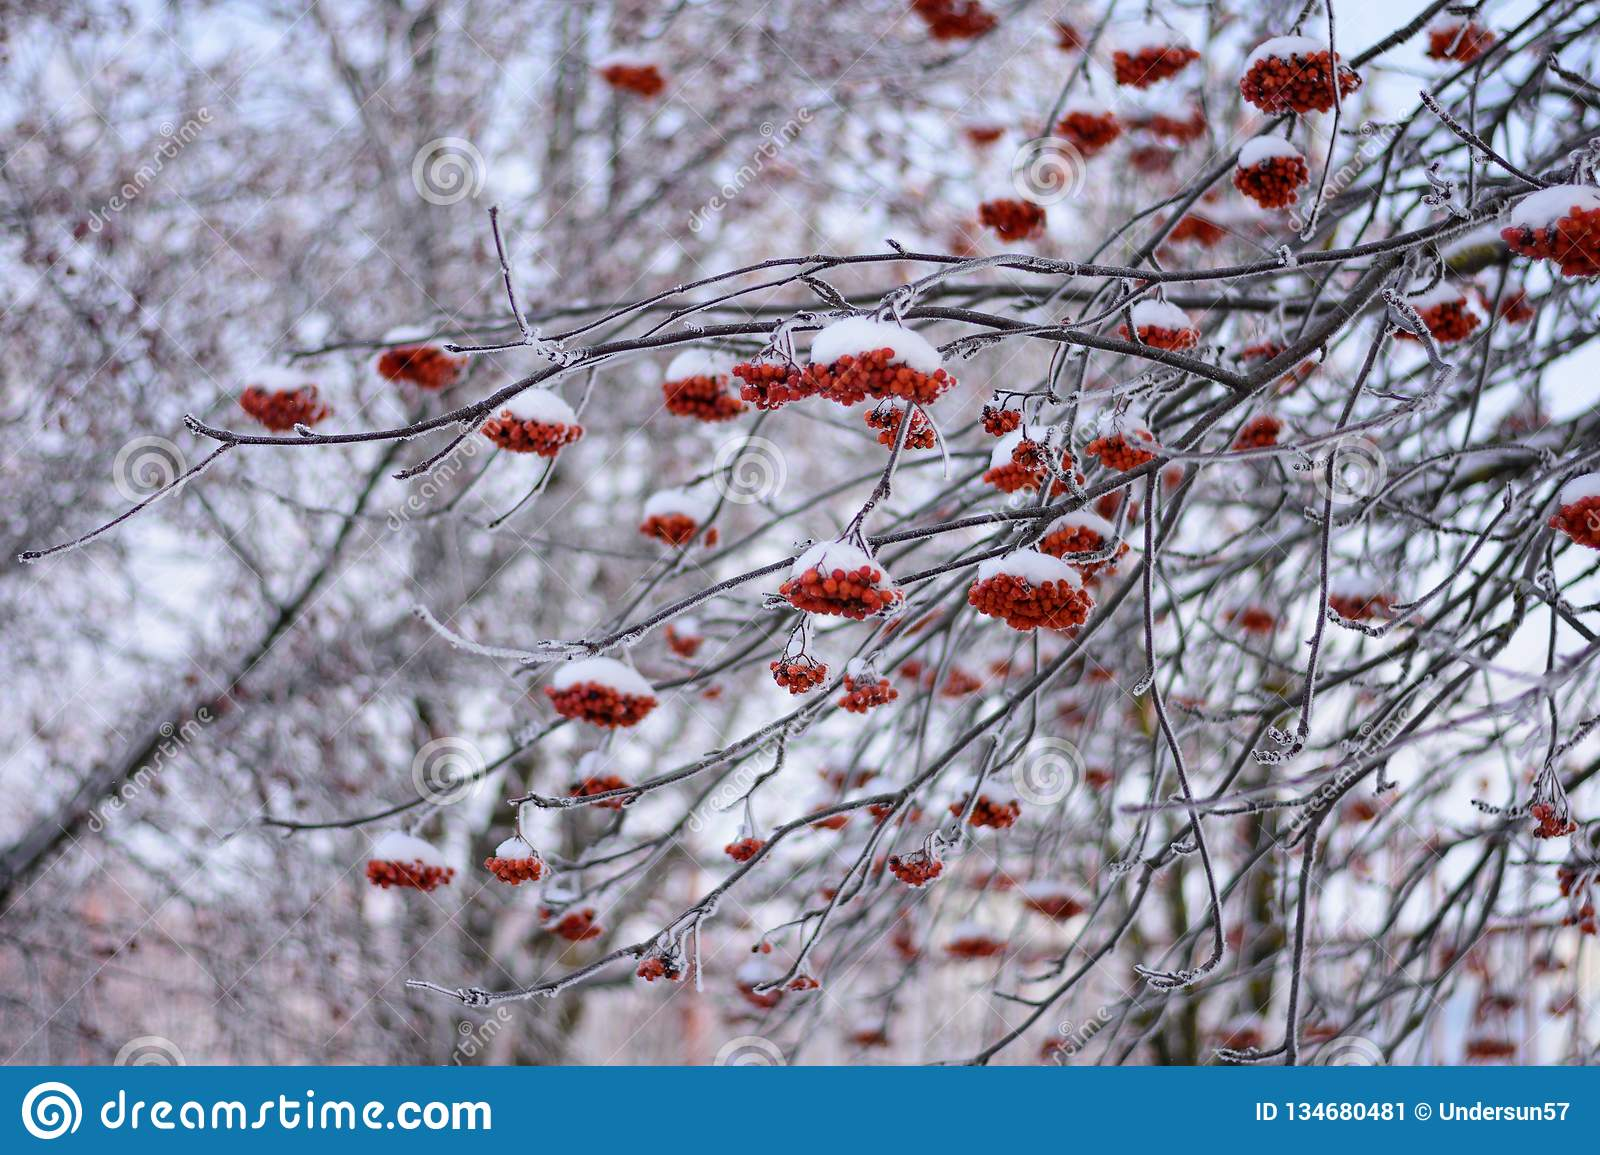 Clusters of Rowan on snow-covered branches